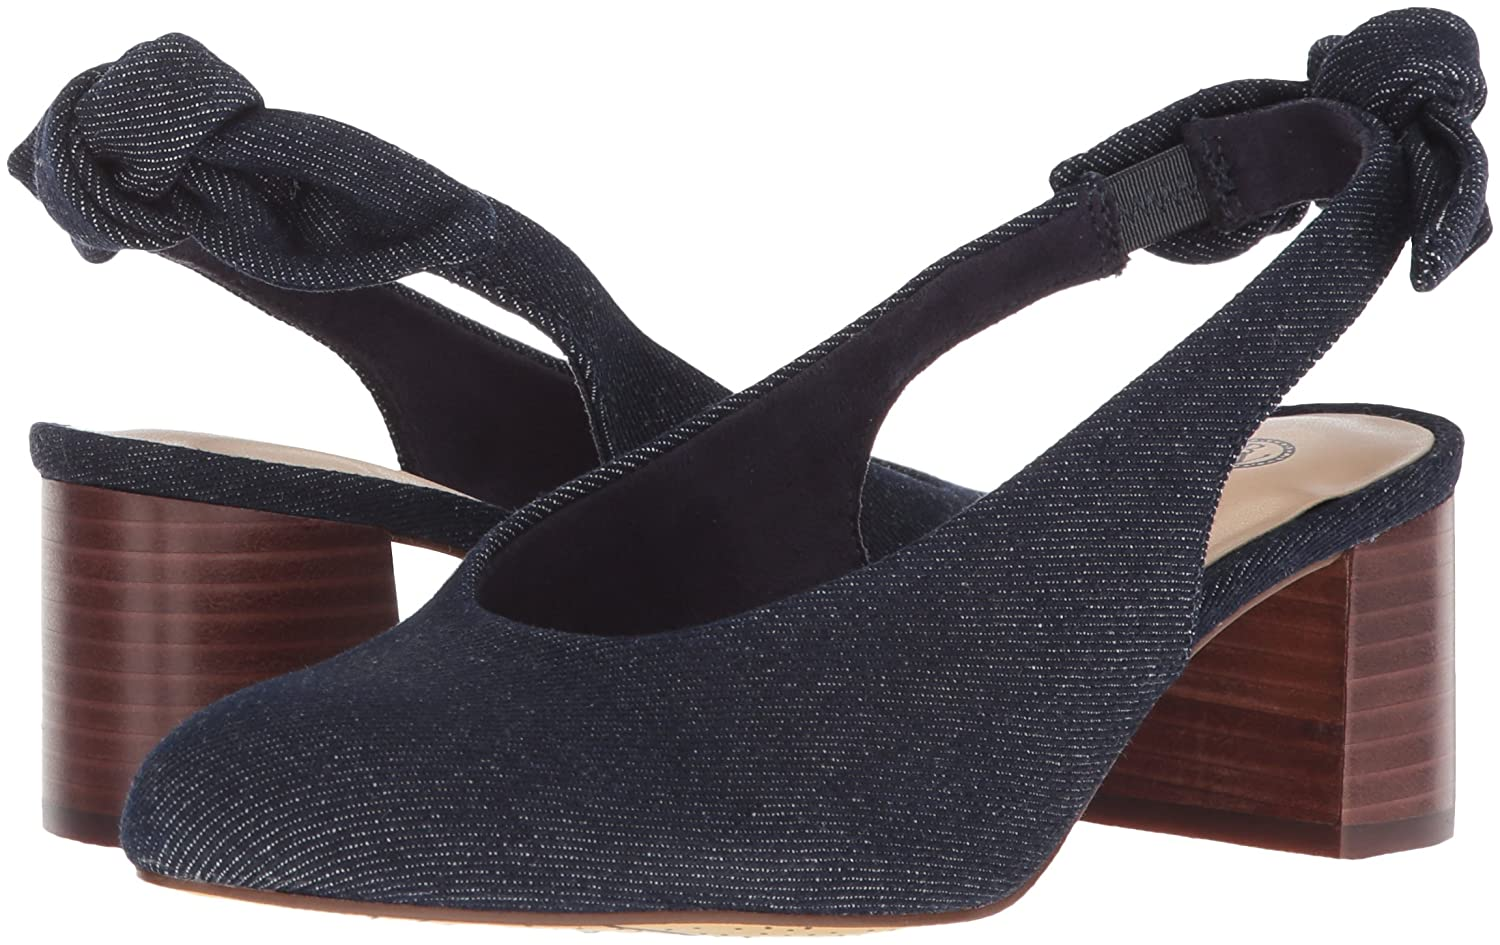 Bella Vita 7.5 Women's Joni Pump B076BVFCDC 7.5 Vita N US|Denim 5bcfc8